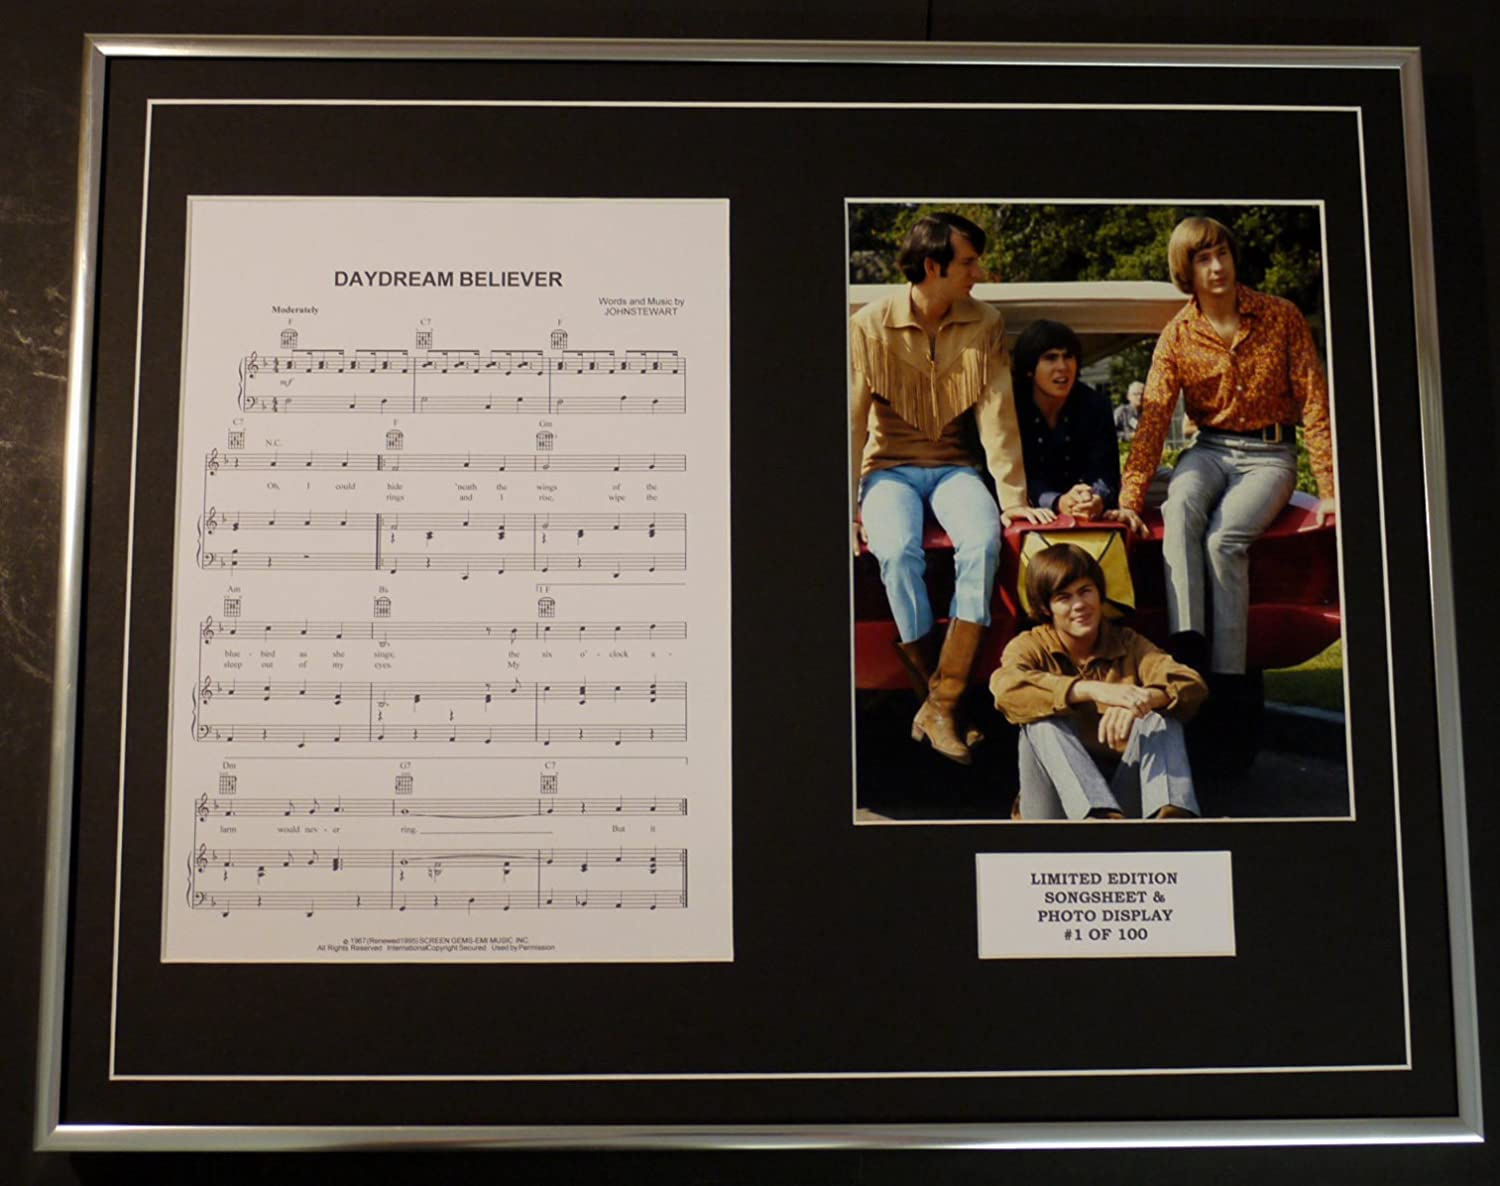 THE MONKEES//Song Sheet /& Photo Display//Limited Edition//DAYDREAM BELIEVER